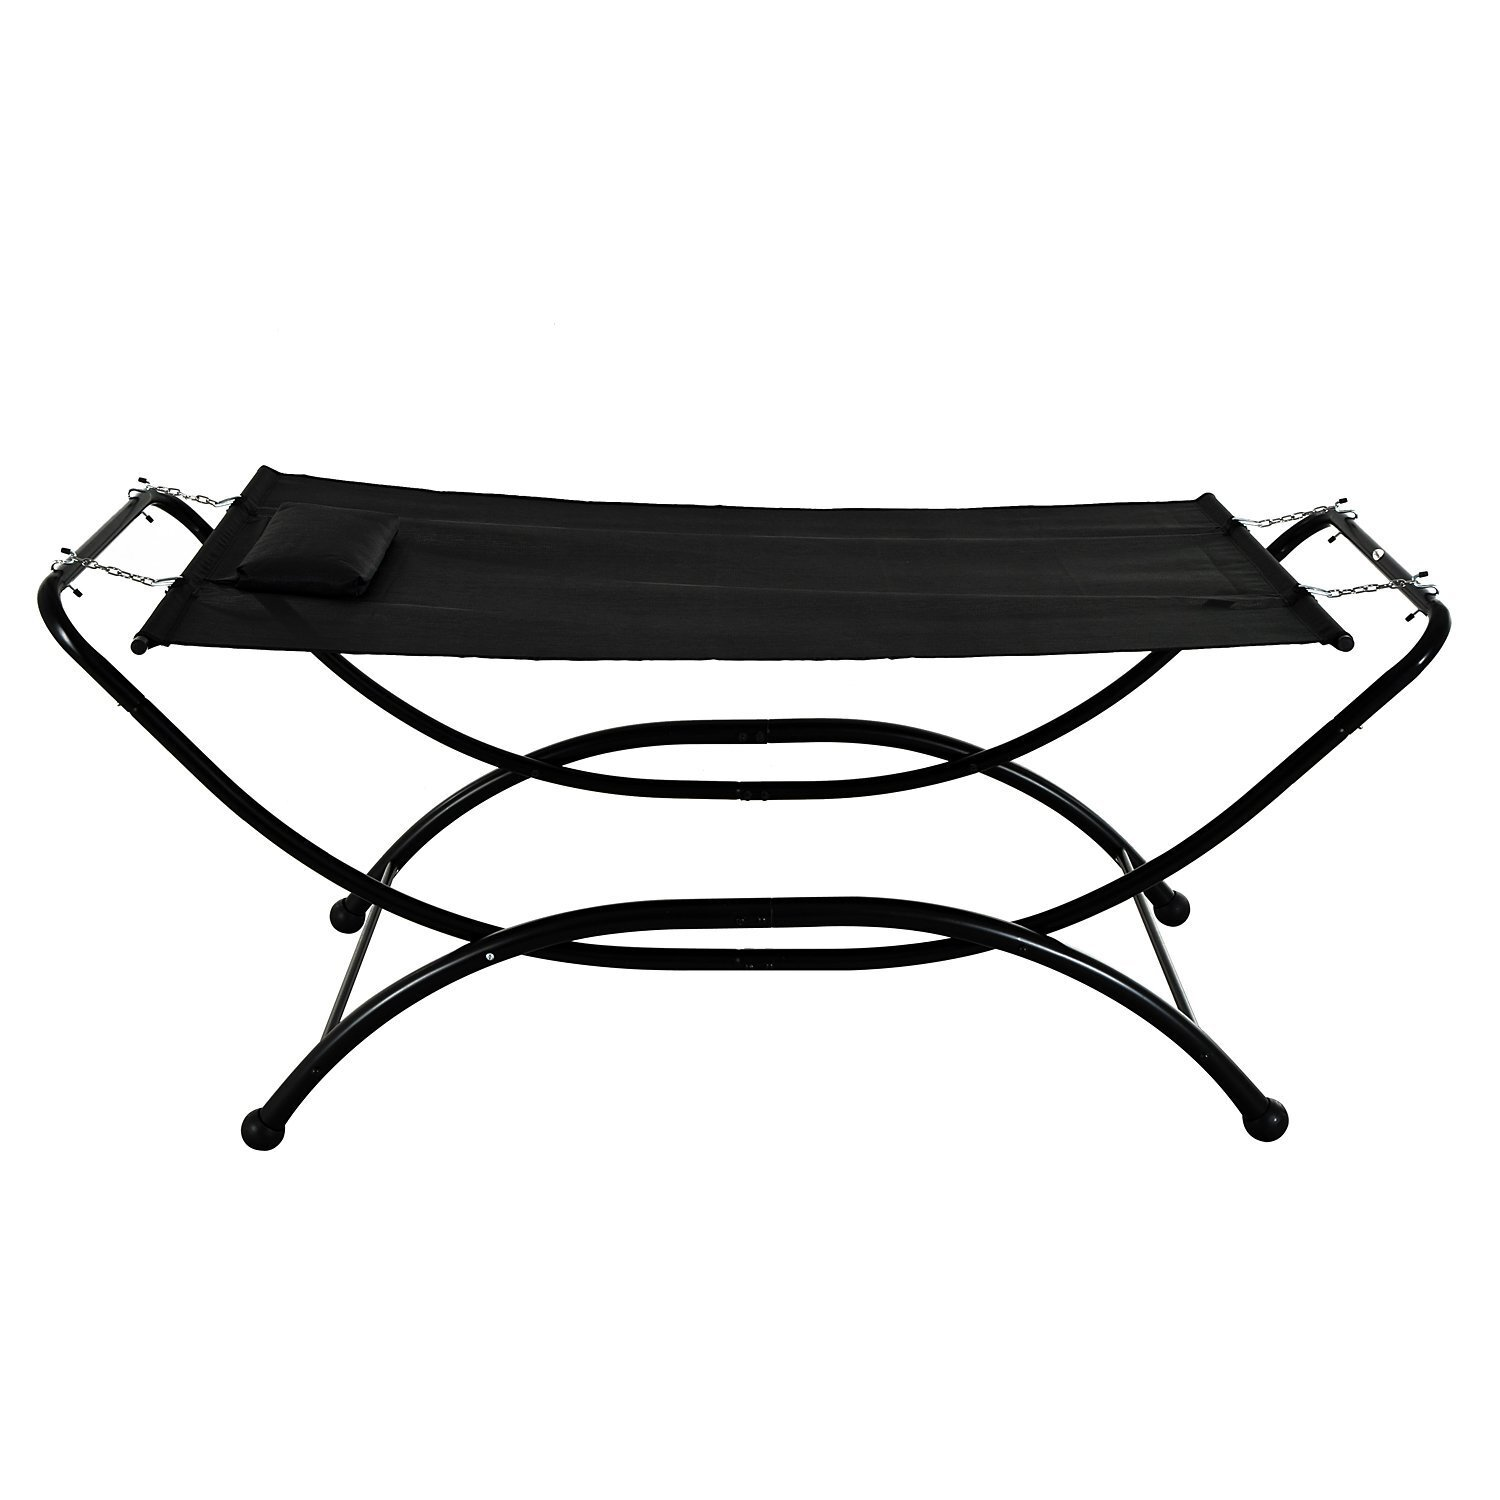 steel tri stand ideas heavy pillow with outdoor g canopy beam hammocks free apartment patio ratings chair swinghammock bar swing bed duty uk furniture hammock